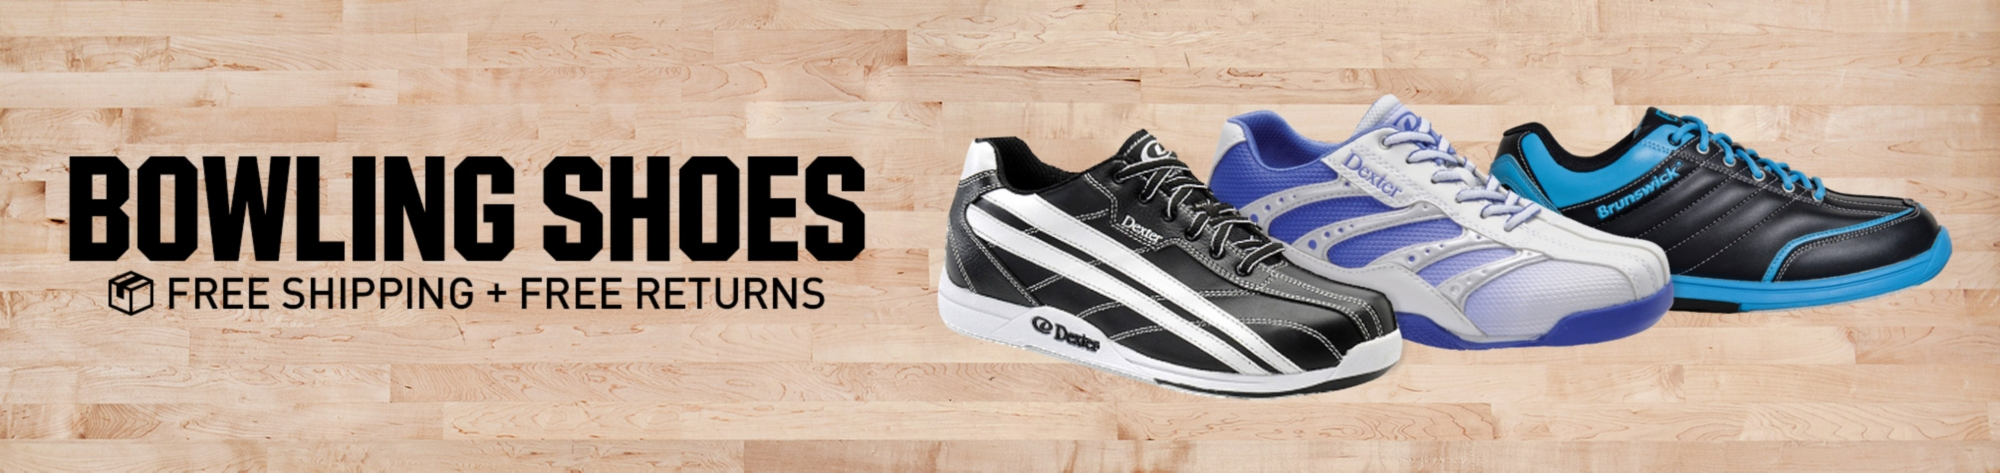 Bowling Shoes | DICK'S Sporting Goods